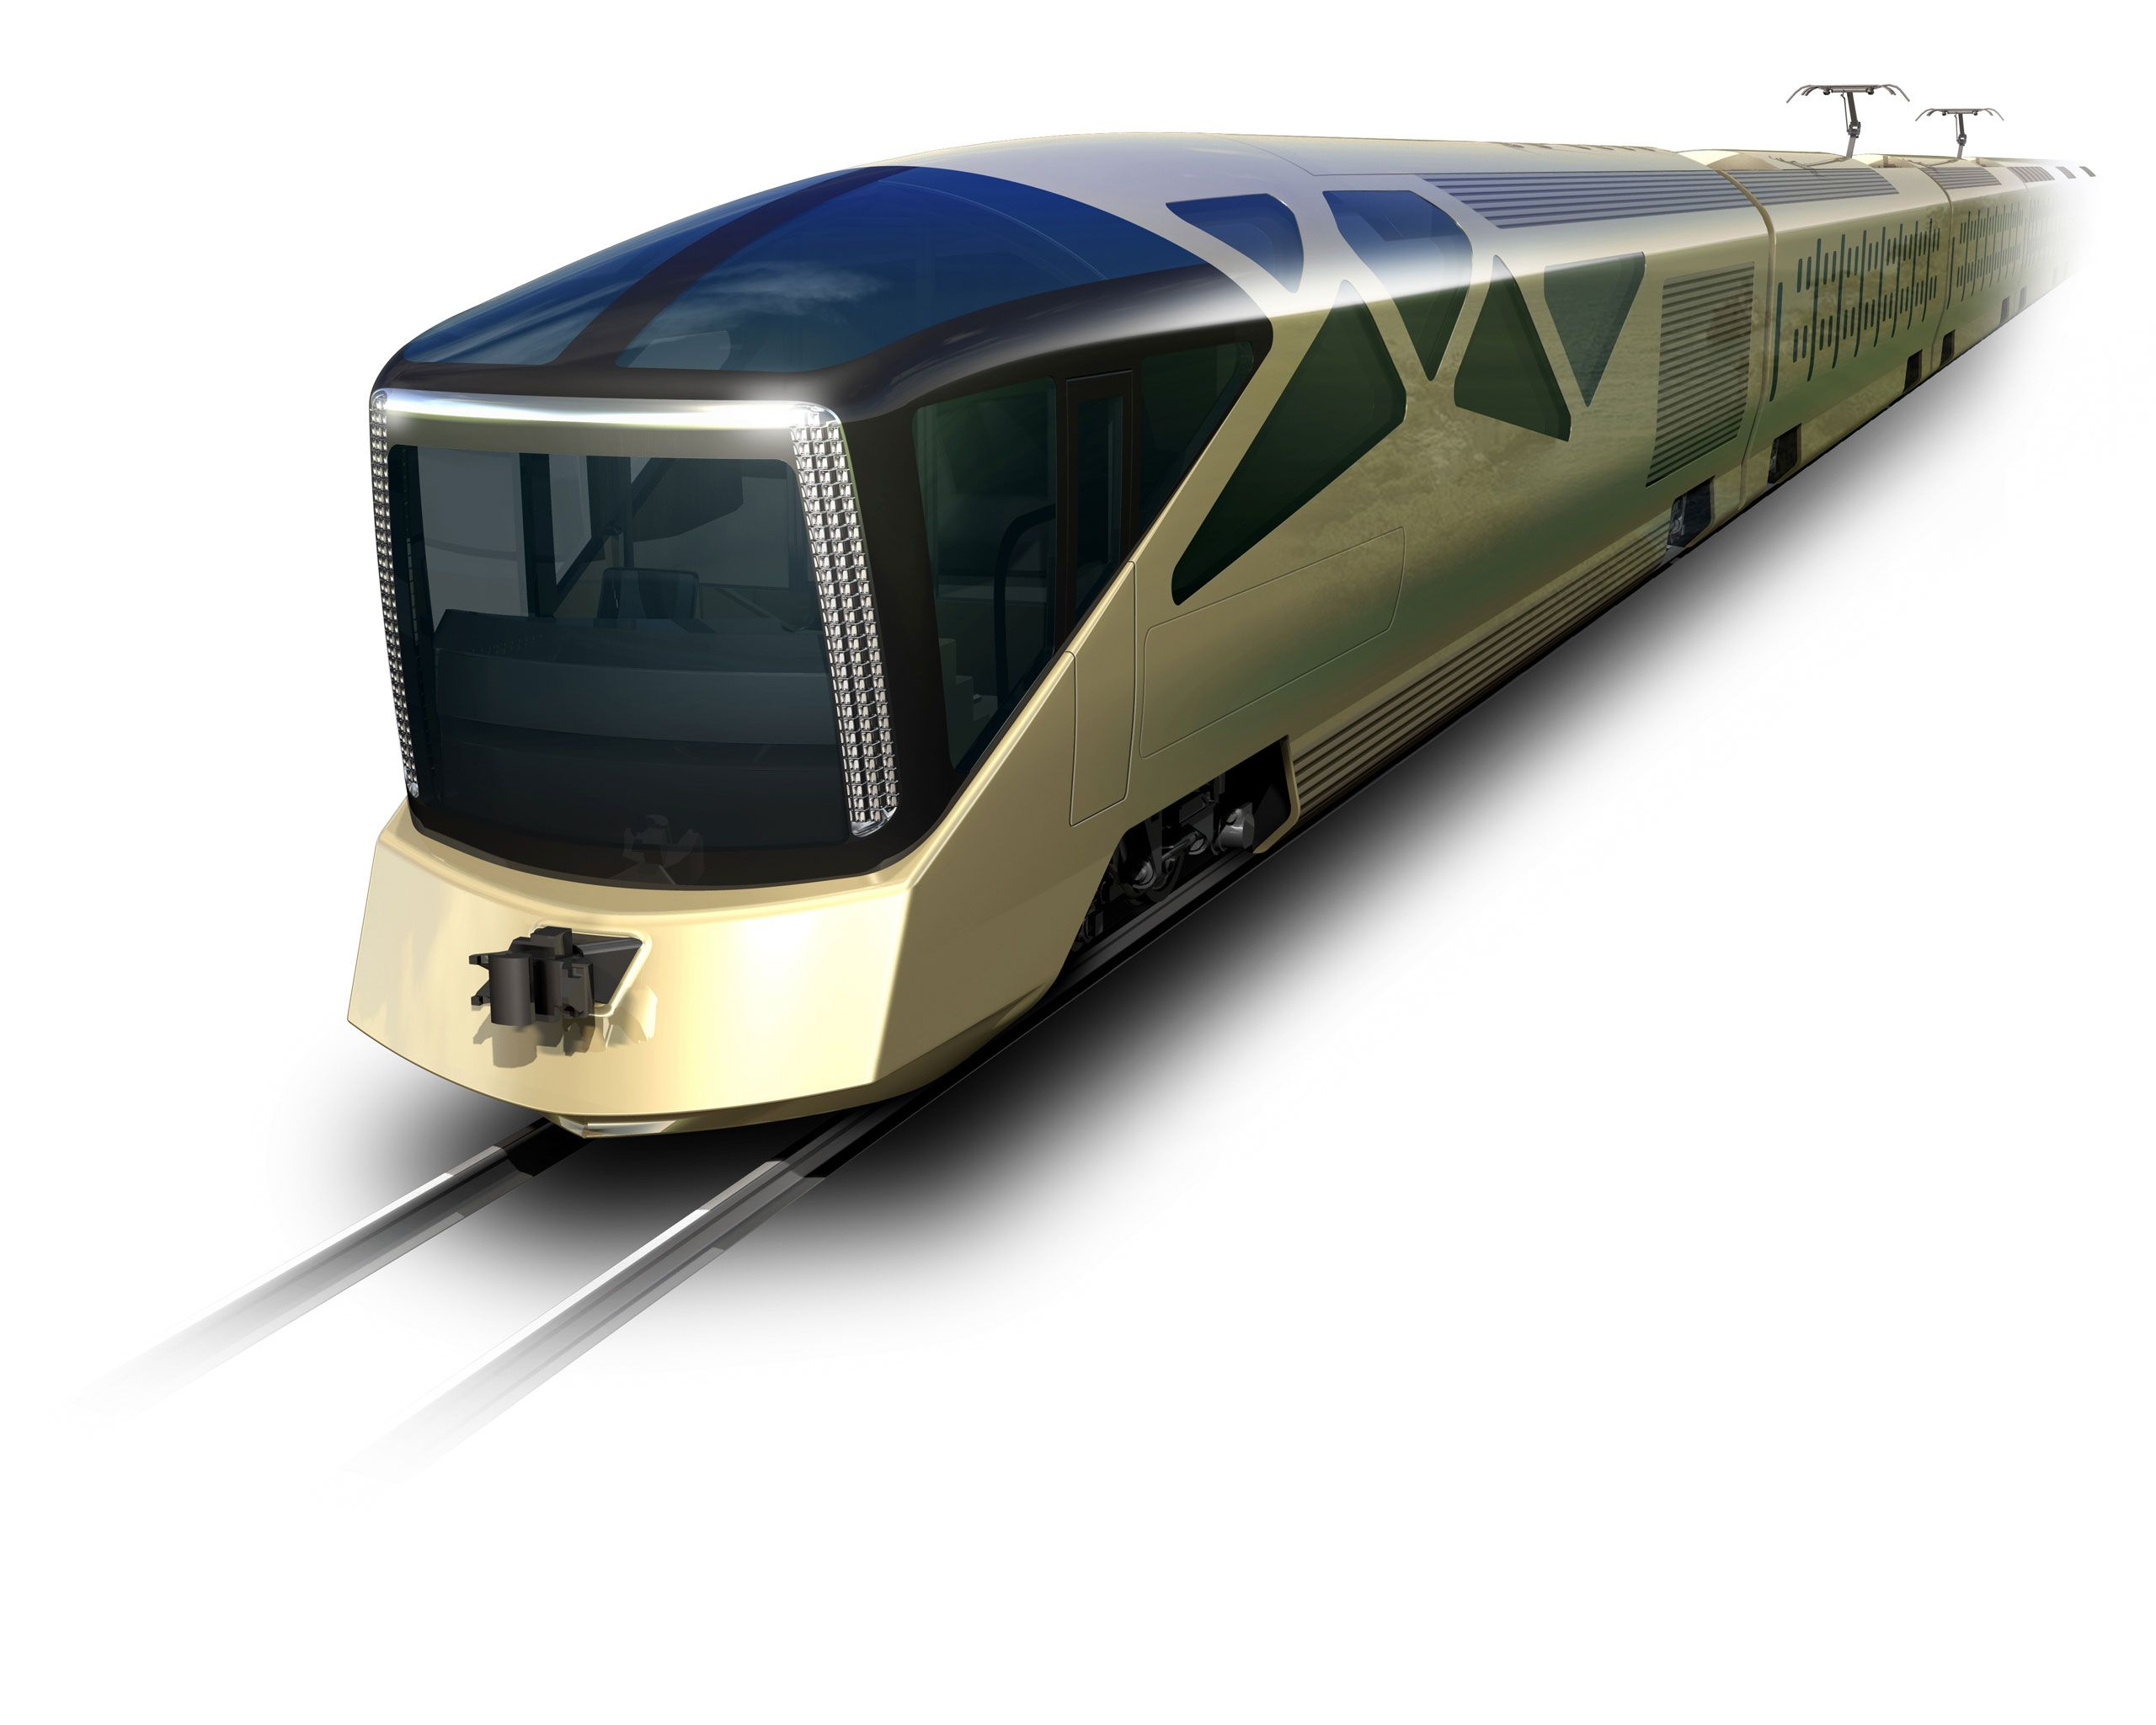 Japan has unveiled several new luxury trains, most recently East Japan Railway Company's Cruise Train, designed by Ferrari designer Ken Okuyama. Here's a look at the new opulent way to travel around Japan's most scenic routes